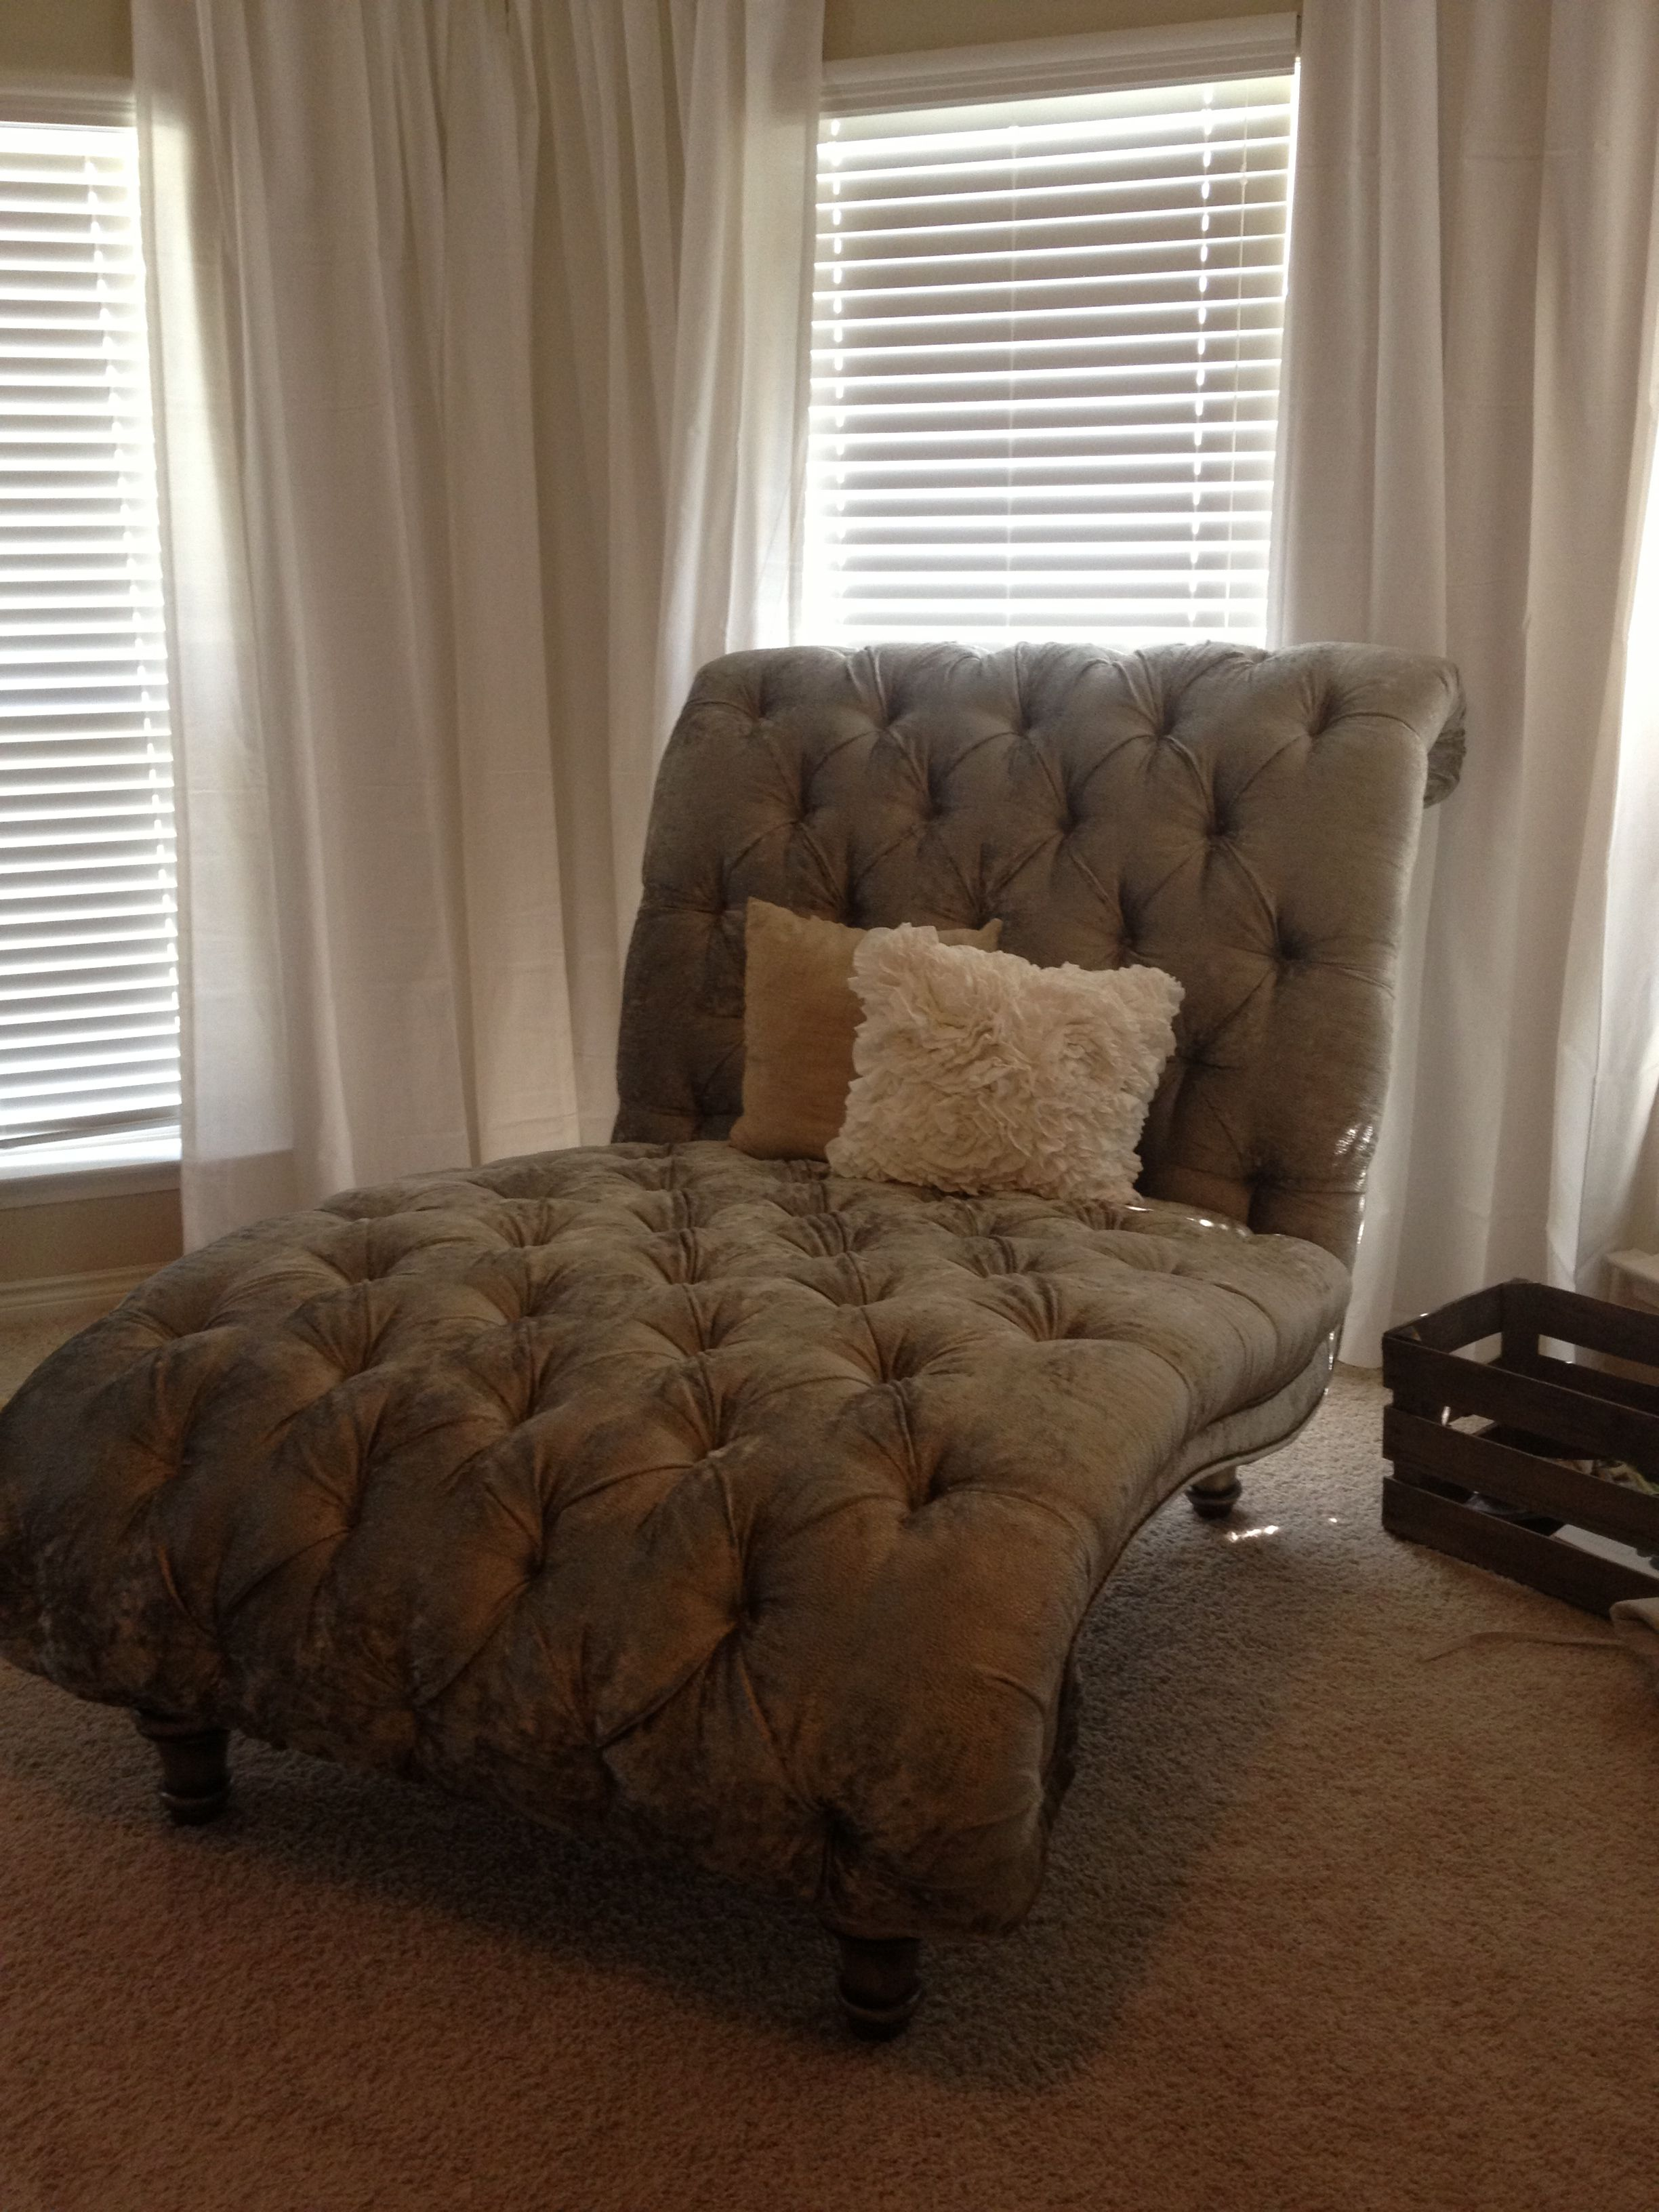 Tufted double chaise lounge chair in our master bedroom different color to add that pop maybe turquoise